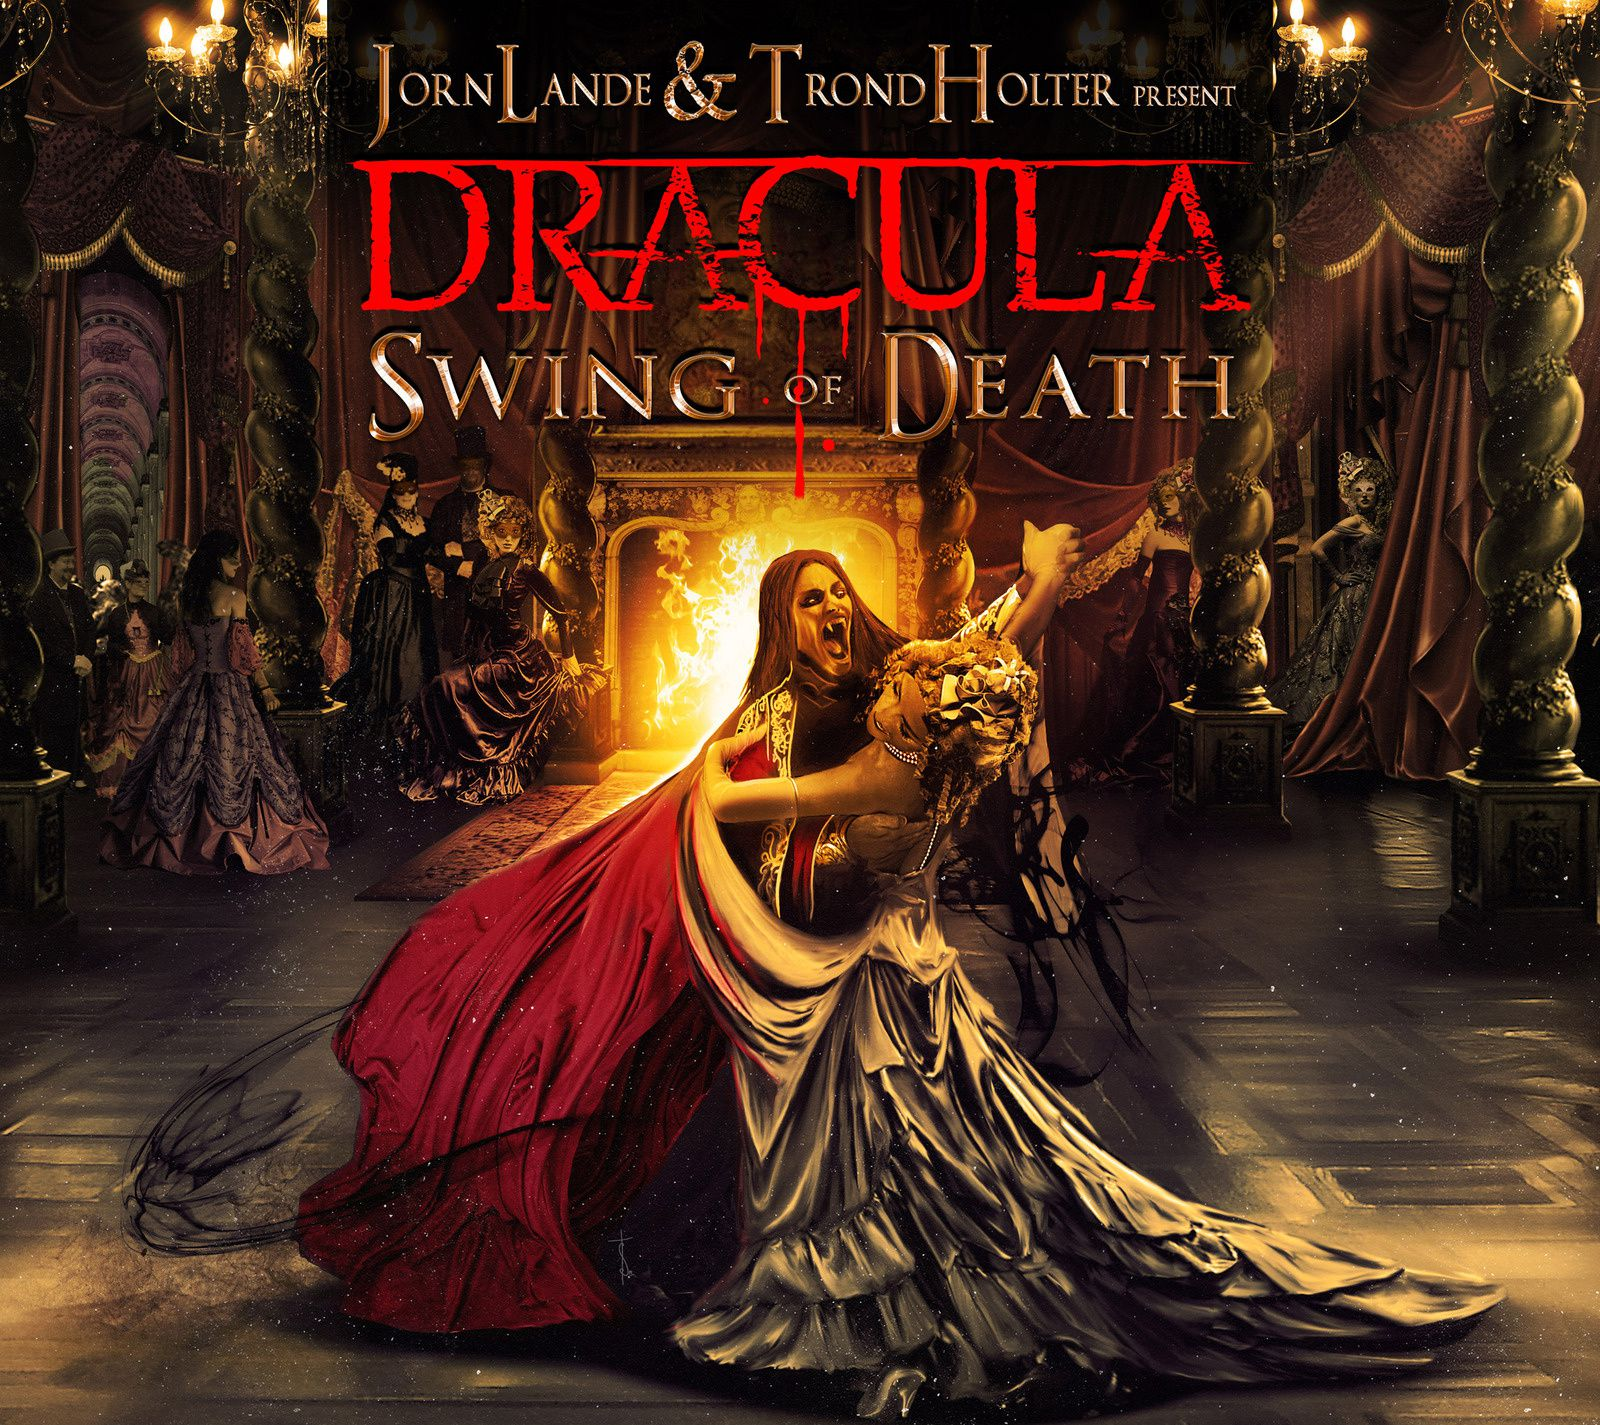 """CD review JORN LANDE & TROND HOLTER present DRACULA """"Swing od death"""""""